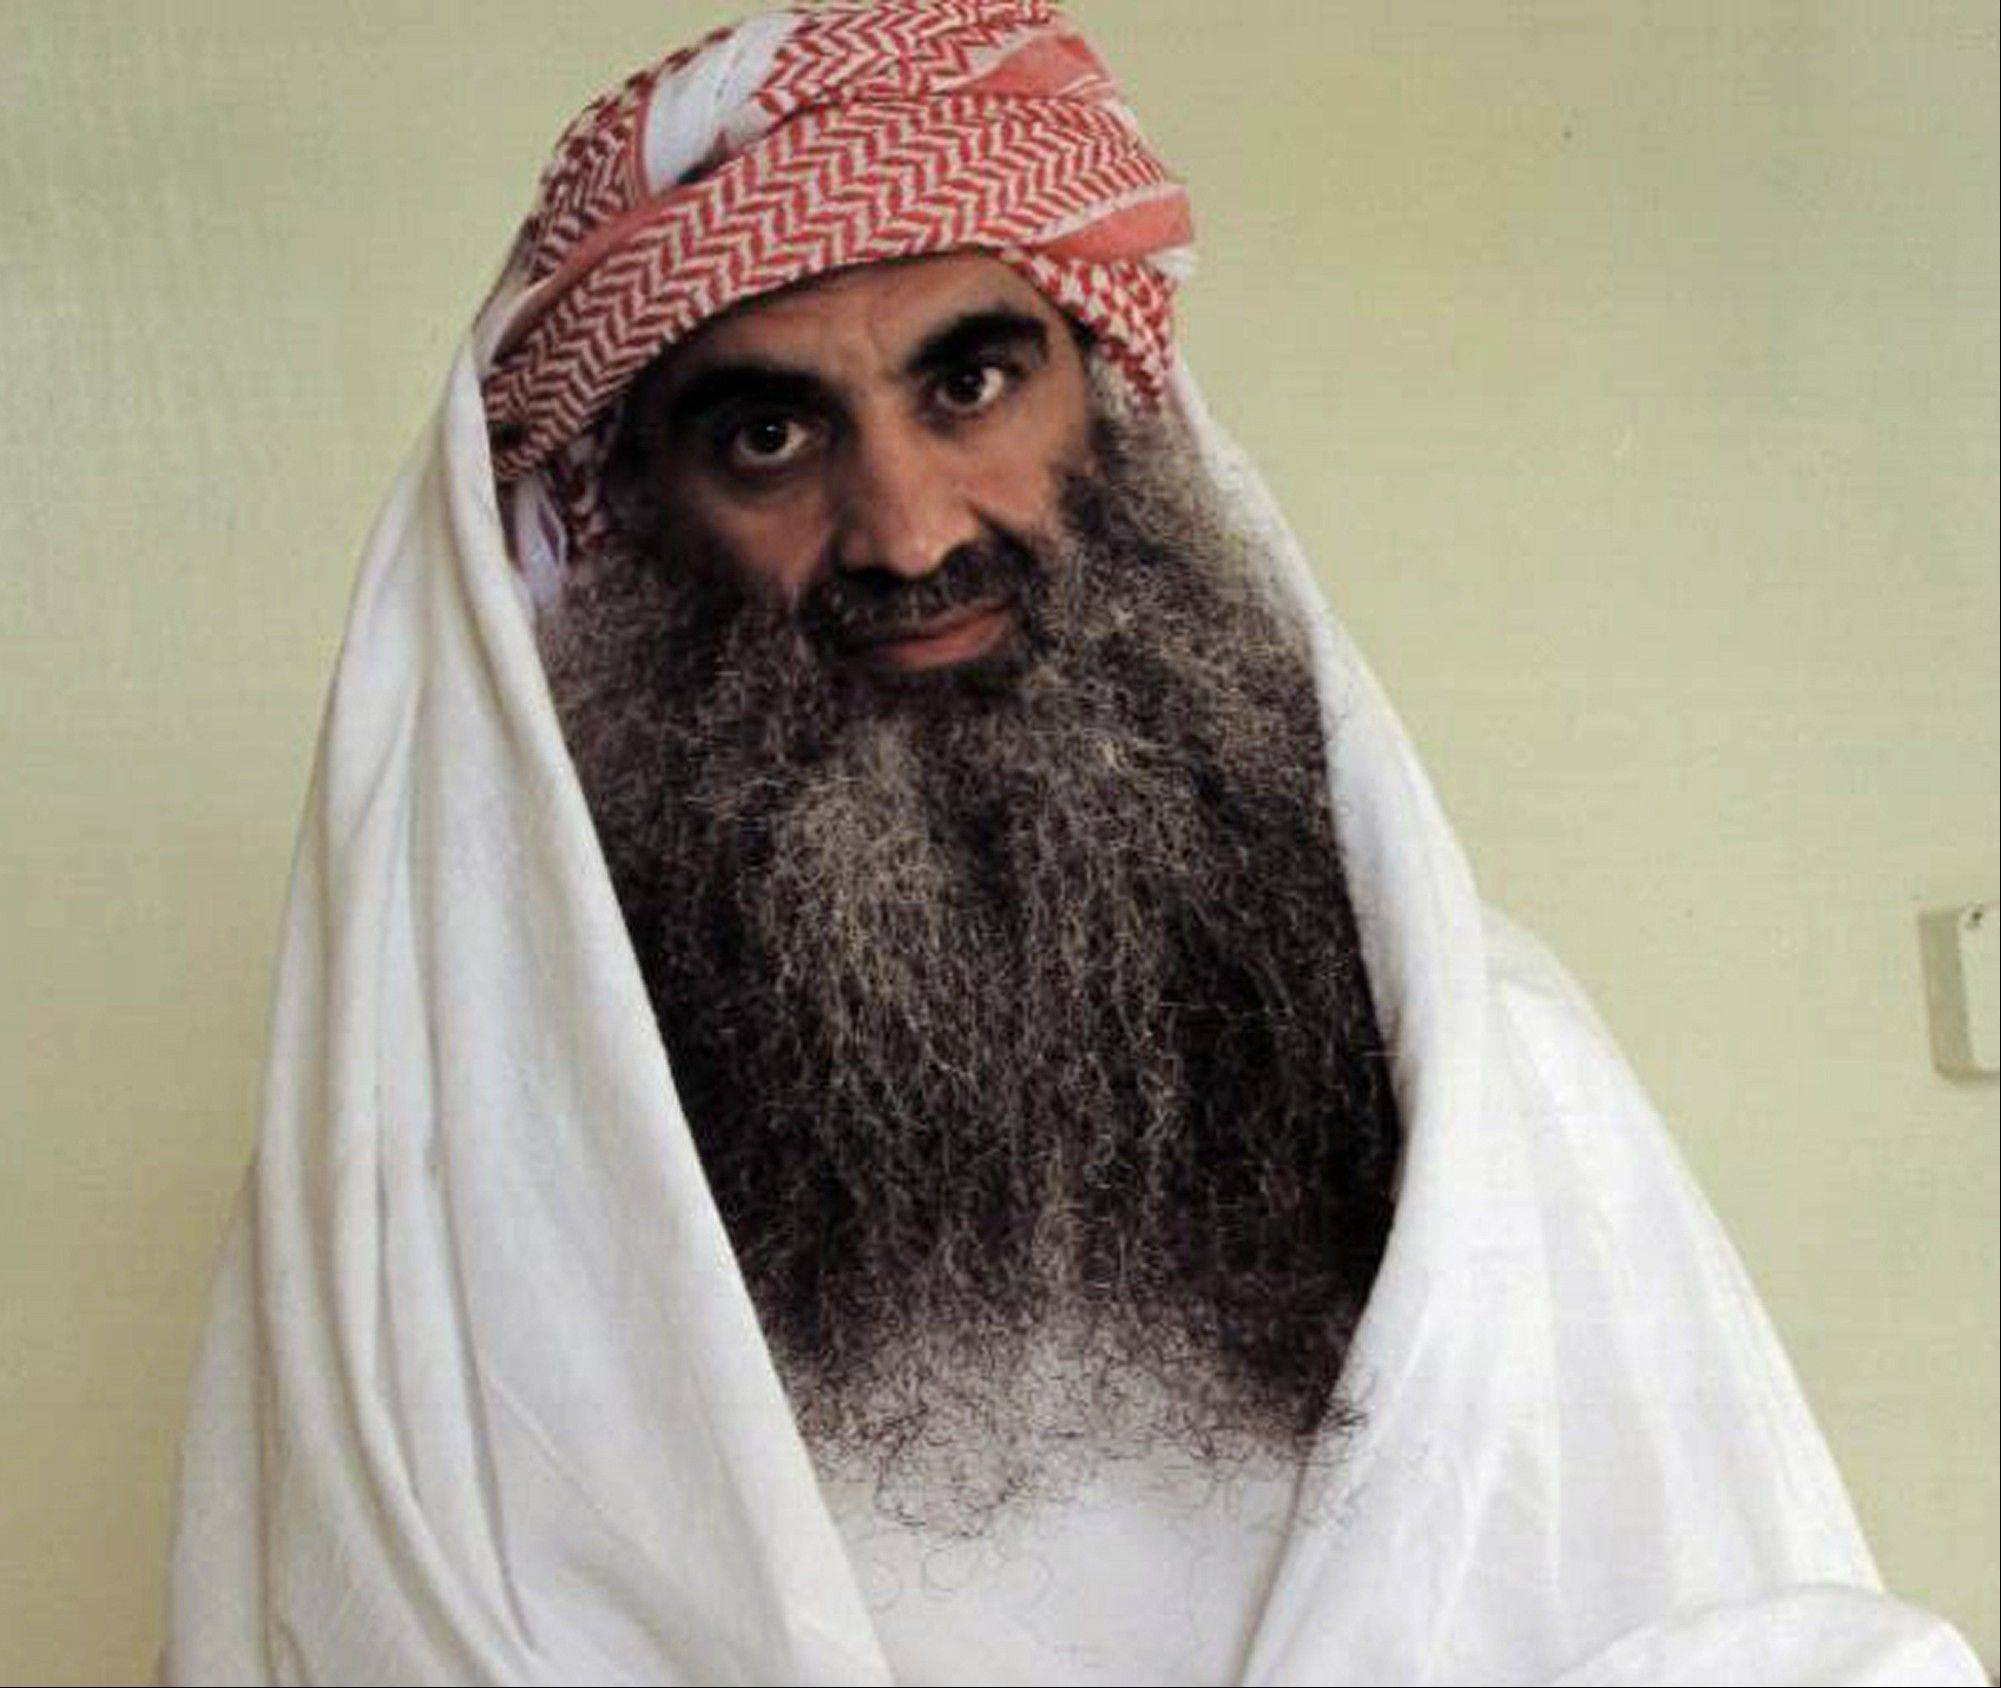 This file photo downloaded from the Arabic language web site www.muslm.net, believed to have been taken in July 2009, shows a man identified by the site as Khalid Sheikh Mohammed, the accused mastermind of the Sept. 11 attacks, in detention at Guantanamo Bay, Cuba.